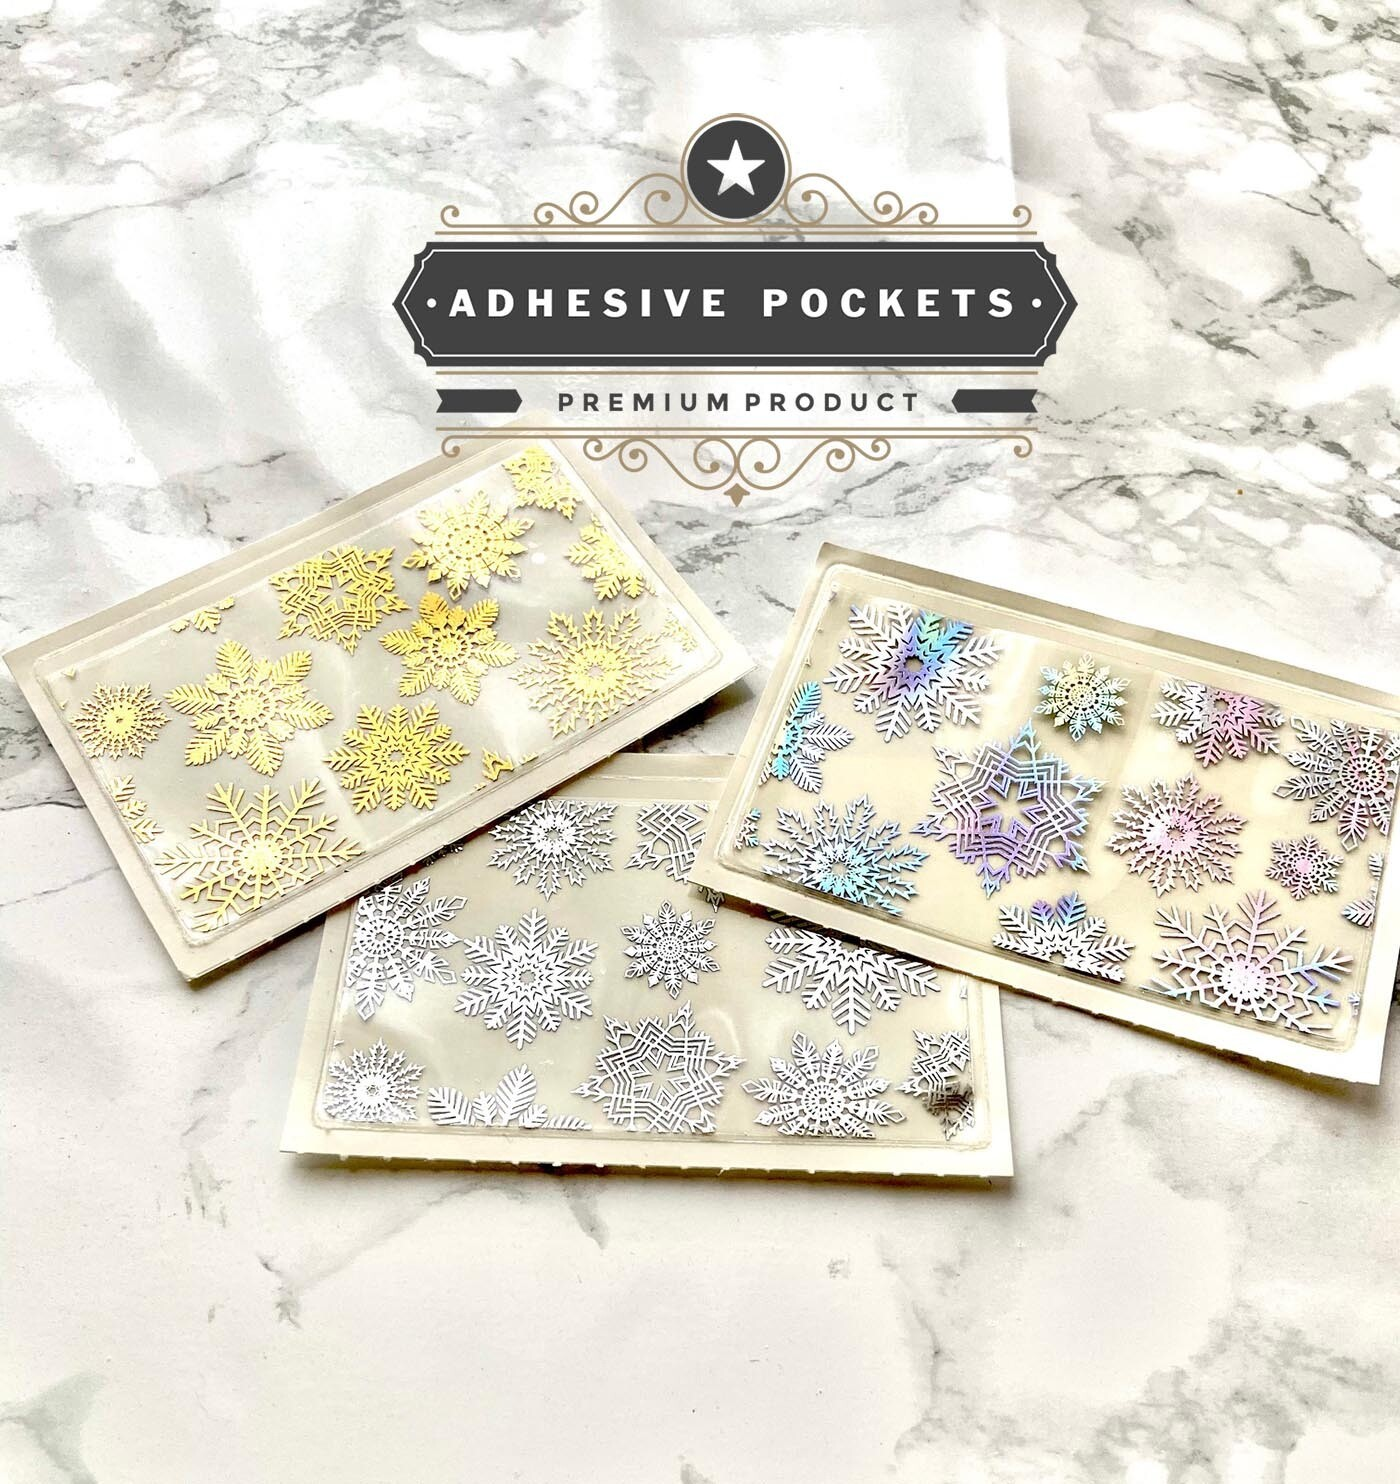 Foiled Snowflakes Adhesive Planner Sticker Pockets| Gold Silver Holographic Functional Bujo TN Happy Planner A5